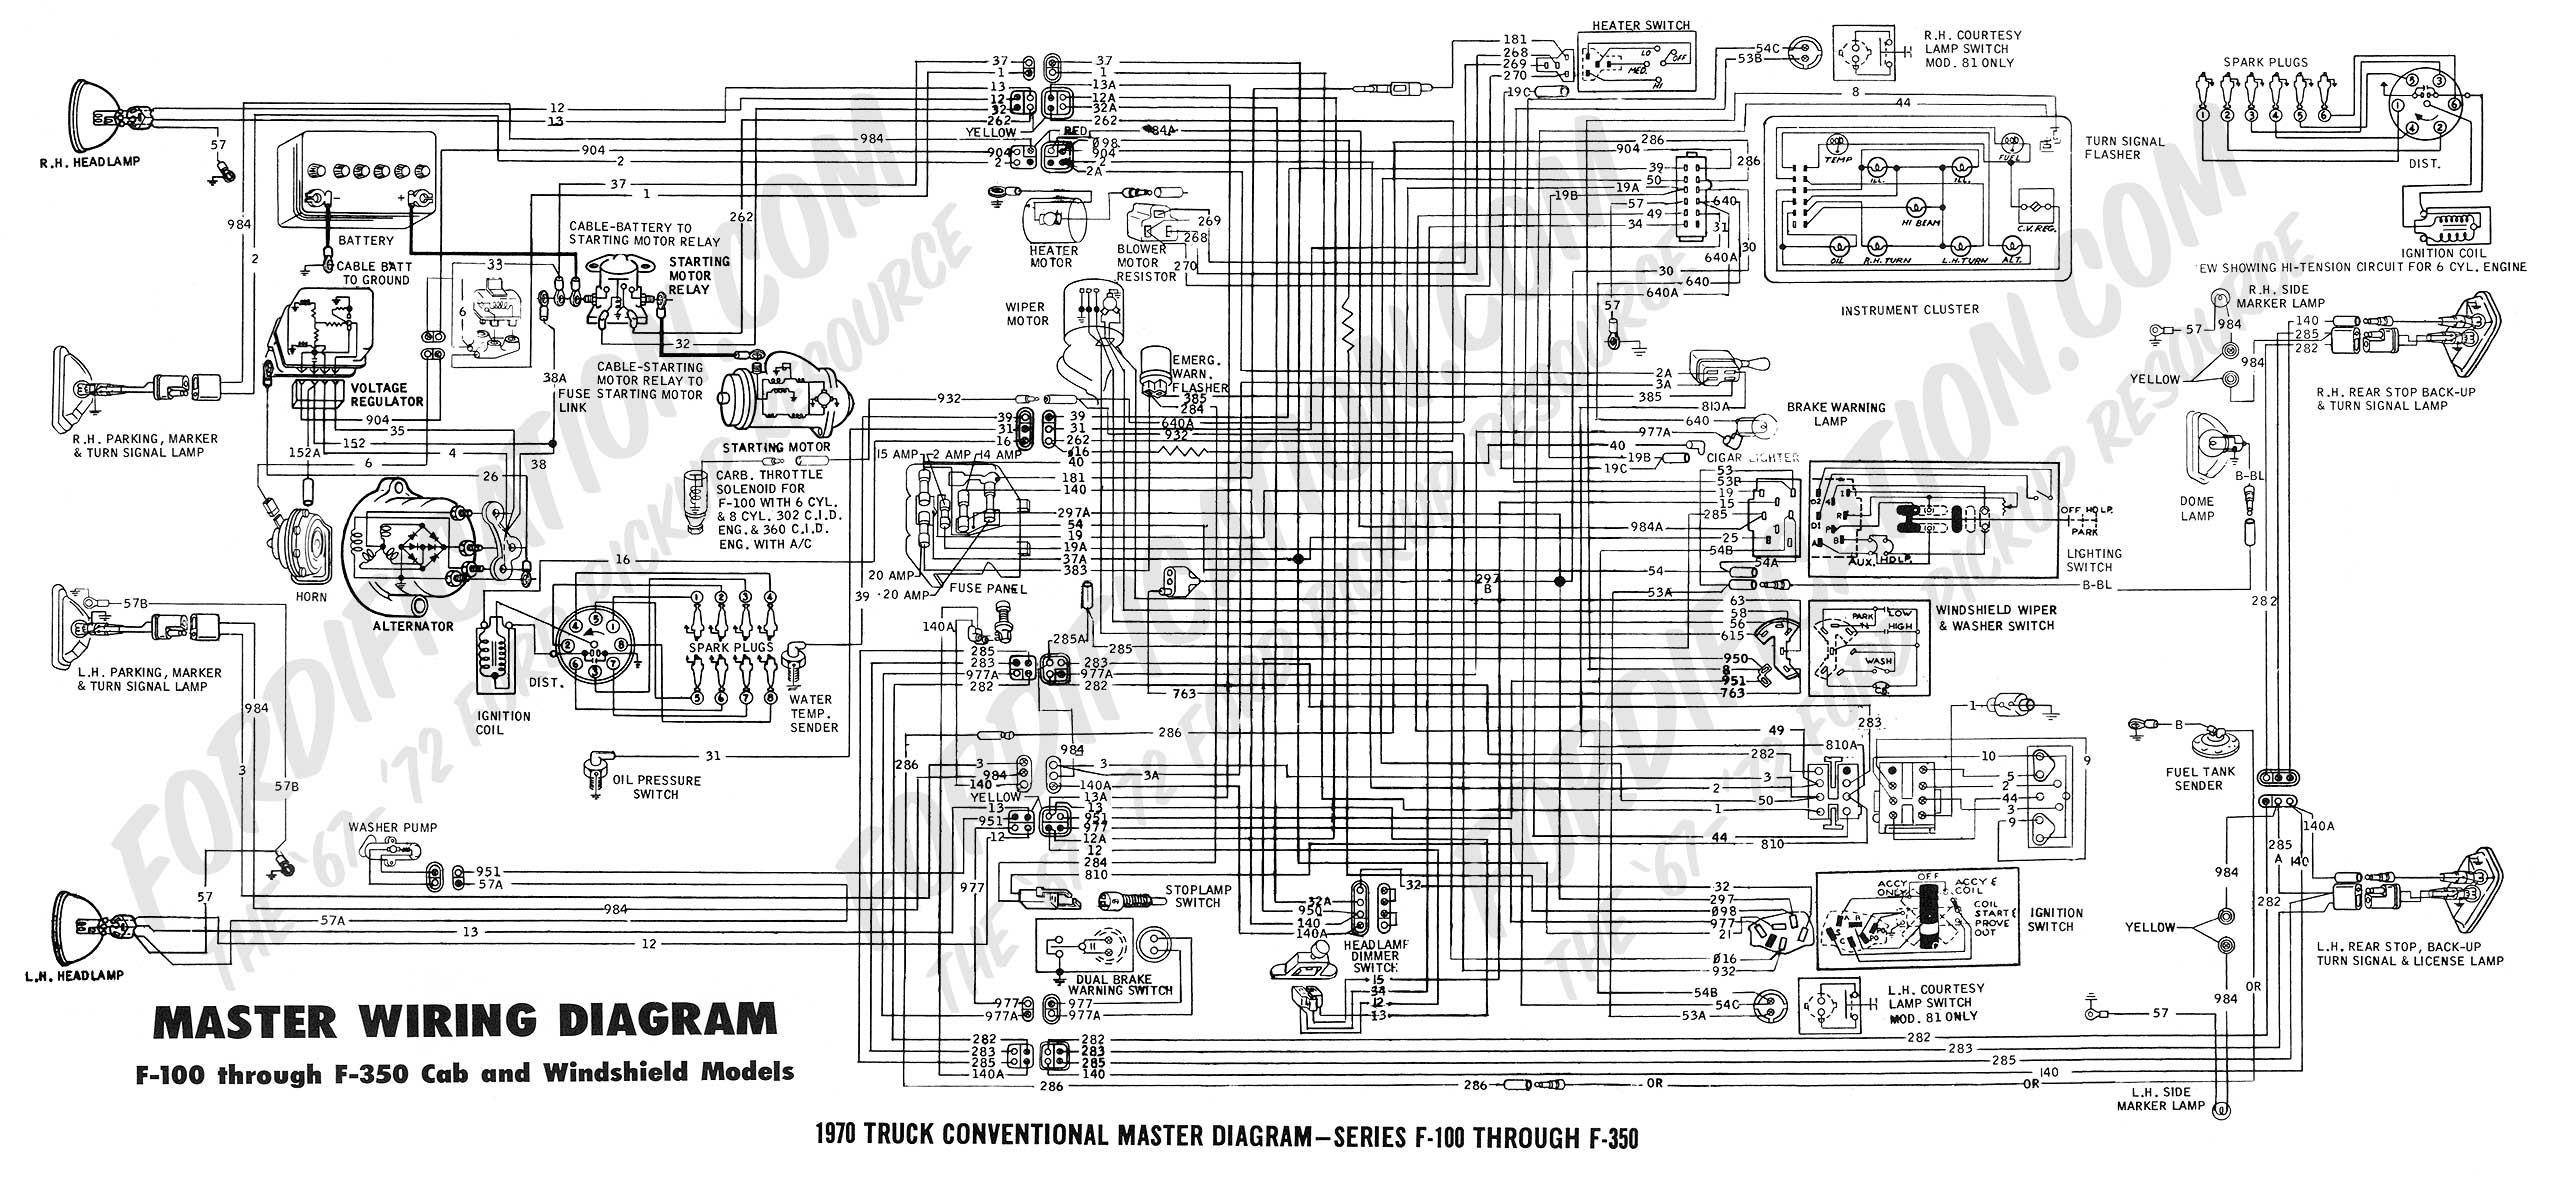 wiring diagram 70_master ford truck technical drawings and schematics section h wiring ford wiring schematics at crackthecode.co